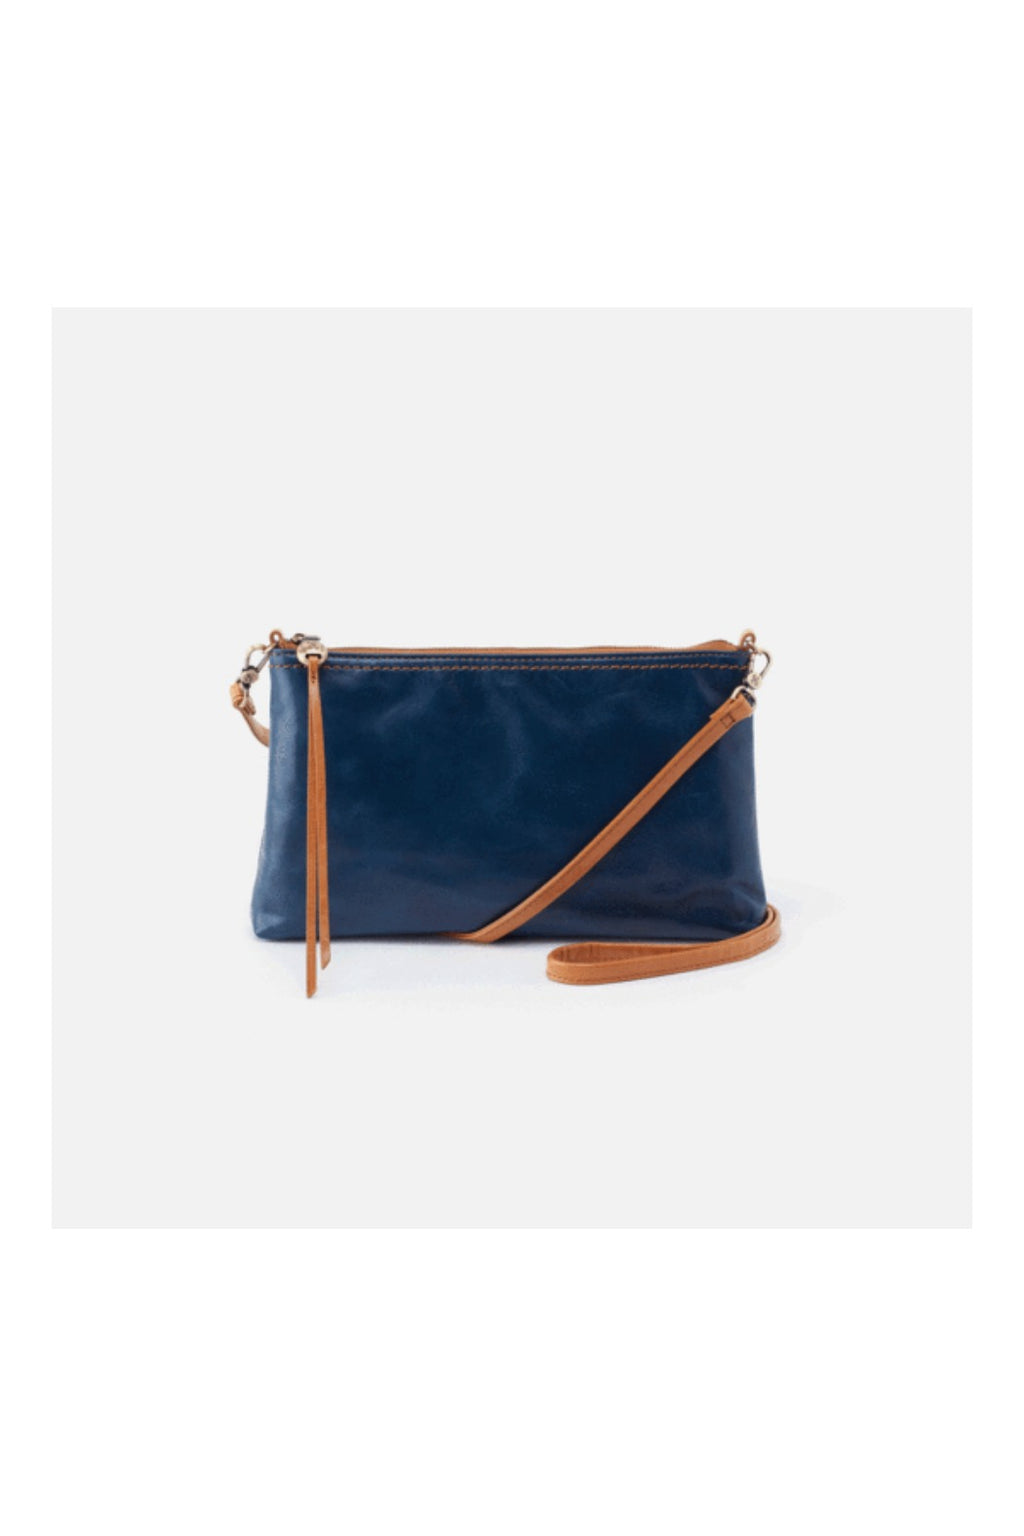 Hobo Darcy Convertible Crossbody Clutch - Sapphire